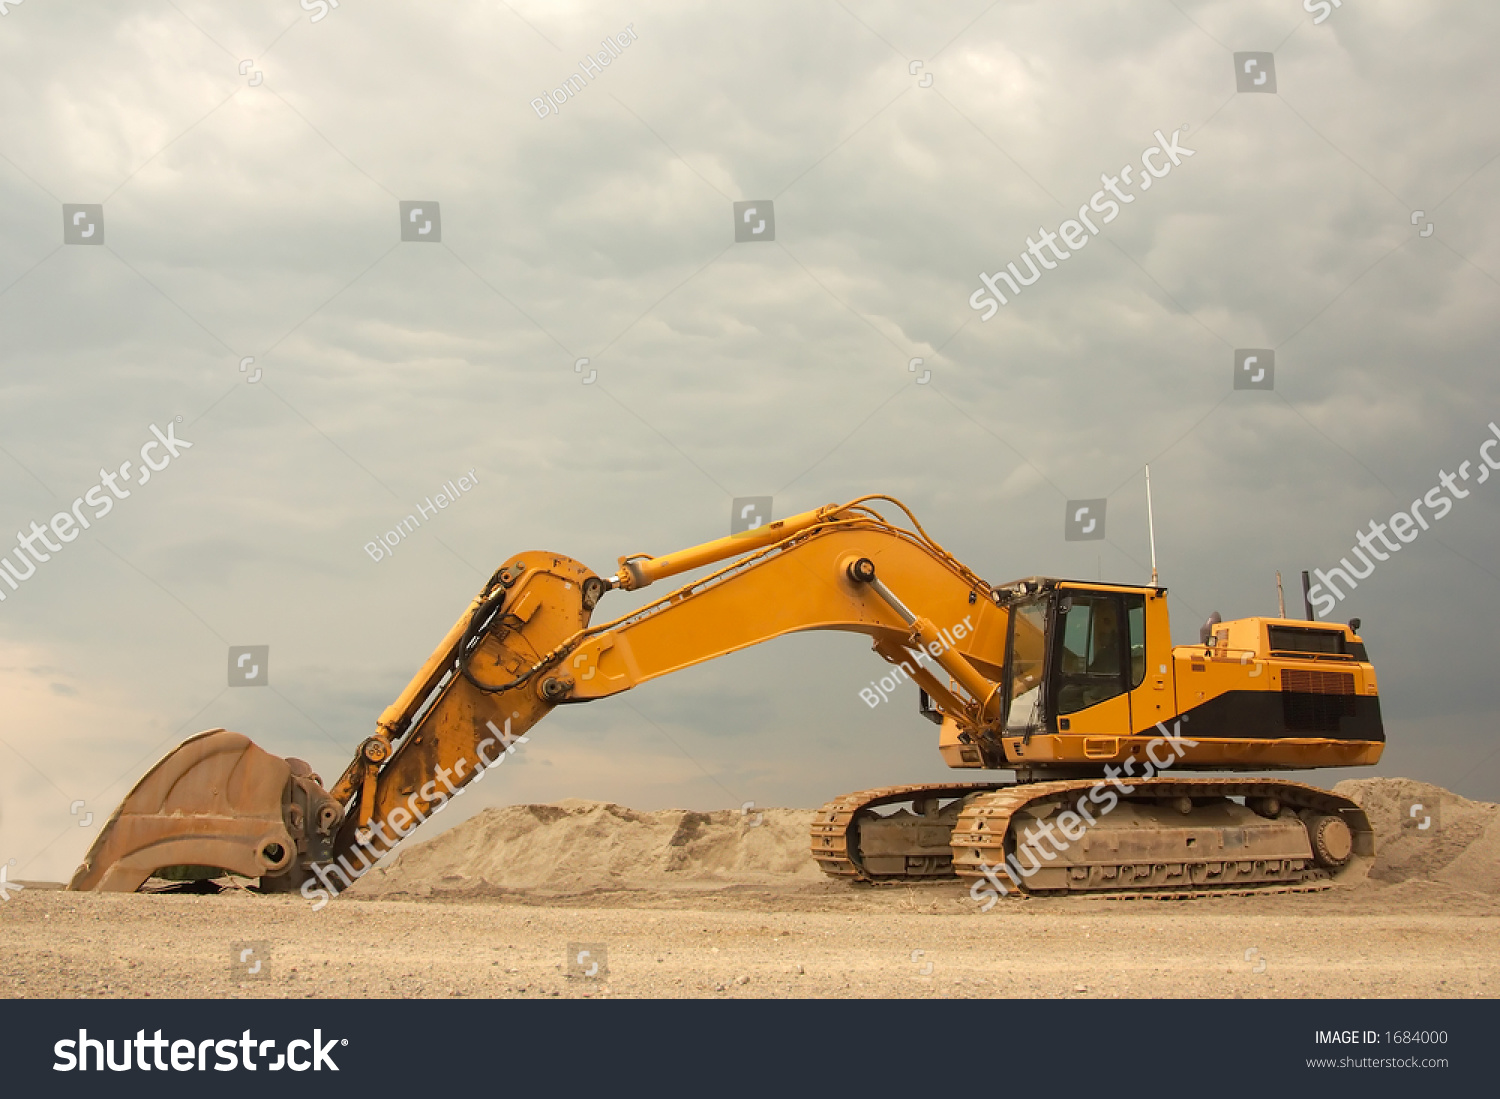 super heavy duty excavator with a operating weight of 154 000 lb 70 000 kg it is one of the. Black Bedroom Furniture Sets. Home Design Ideas